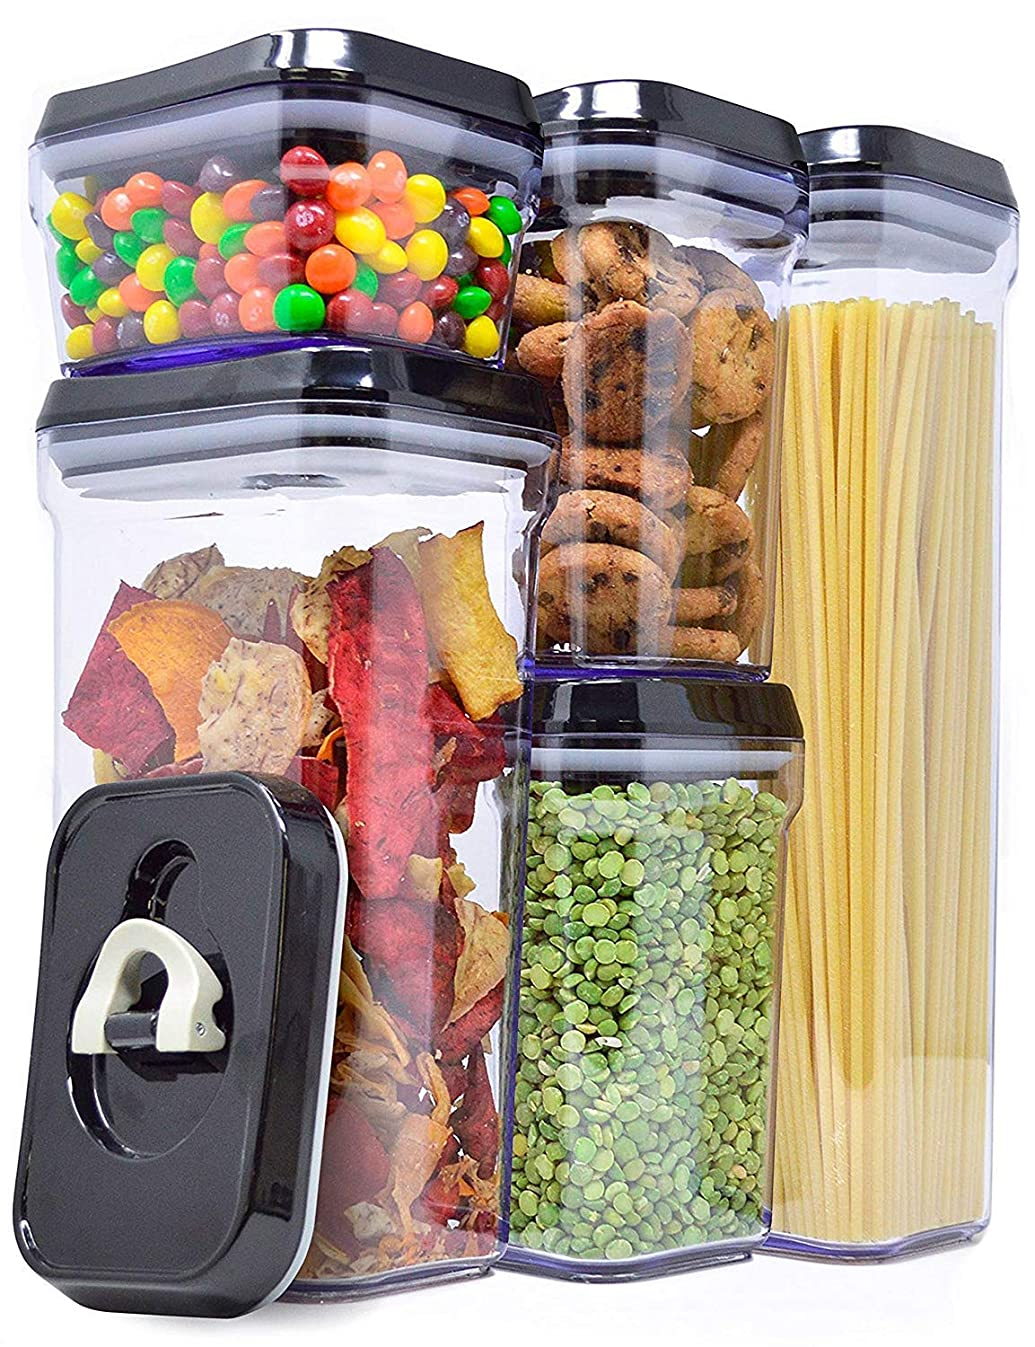 Zeppoli Air-Tight Food Storage Container Set - 5-Piece Set - Durable Plastic - BPA Free - Clear Plastic with Black Lids